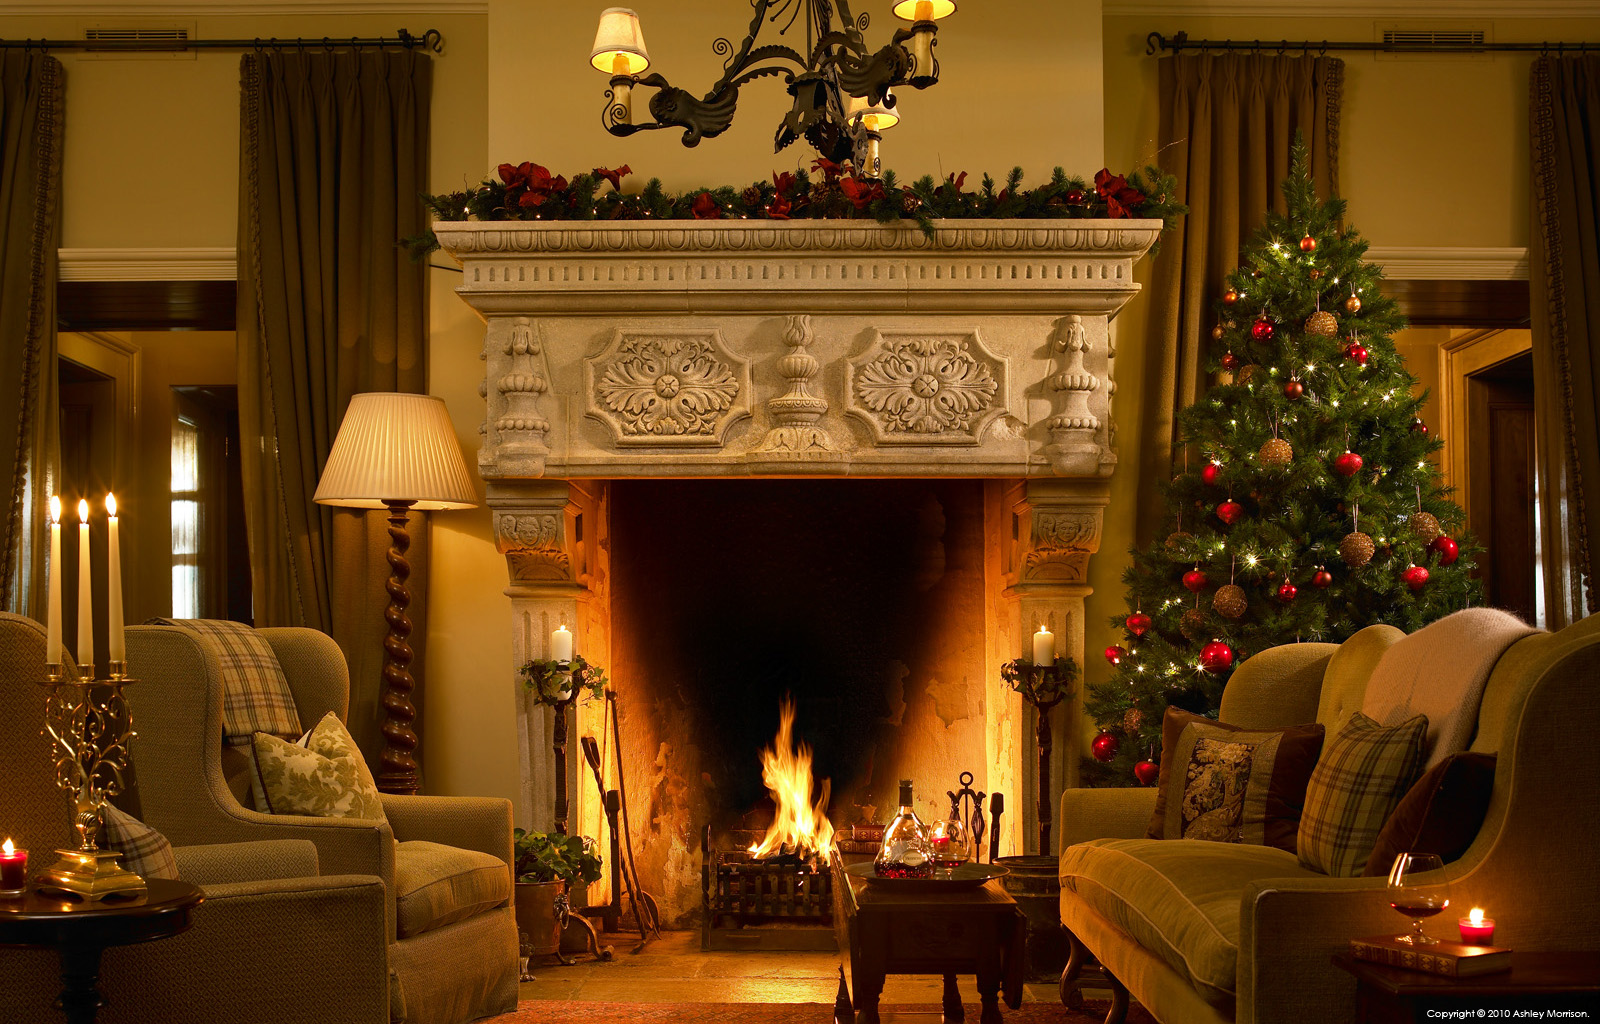 The fireplace in the Lodge at the Trump International Golf Links & Hotel in County Clare.